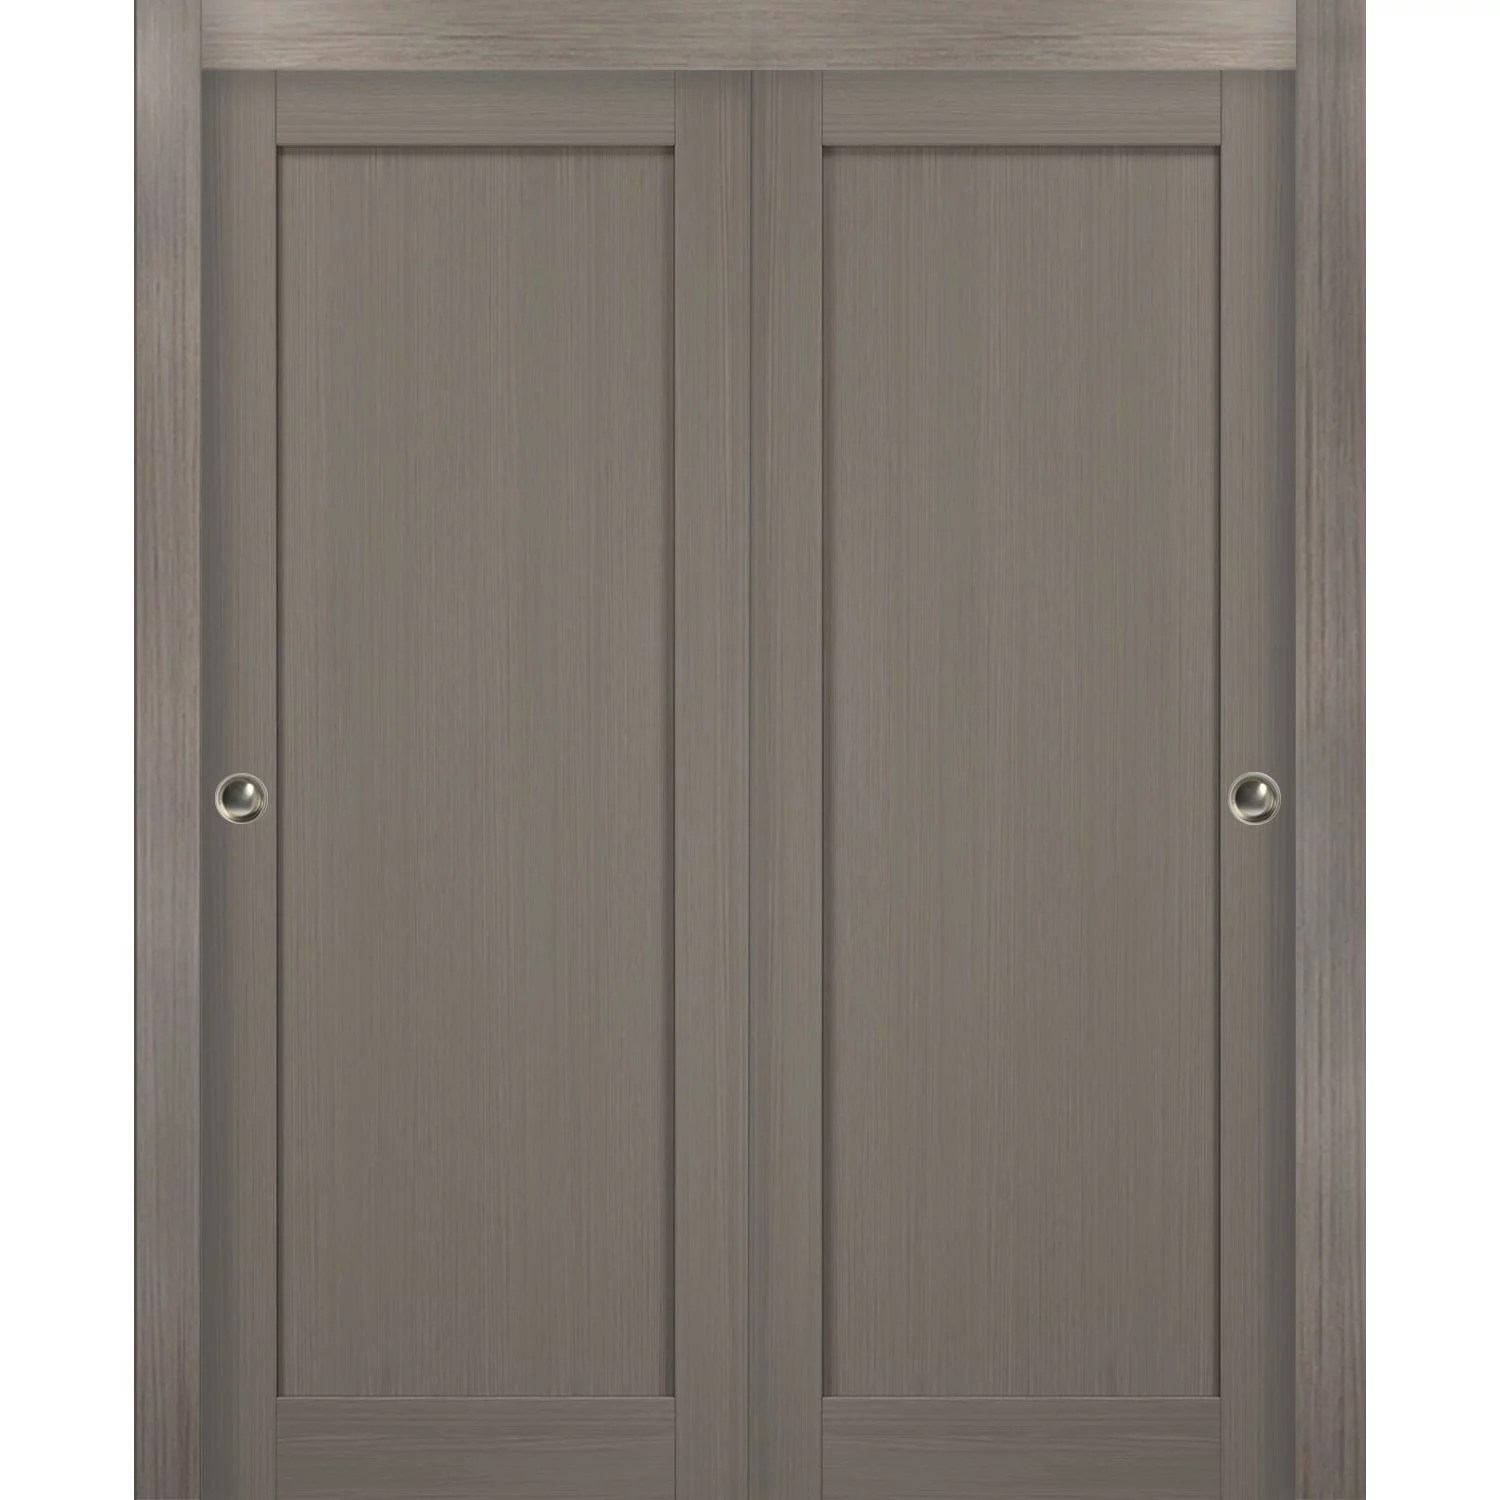 sliding closet bypass doors 60 x 80 with hardware quadro 4111 grey ash sturdy top mount rails moldings trims set kitchen wooden solid bedroom